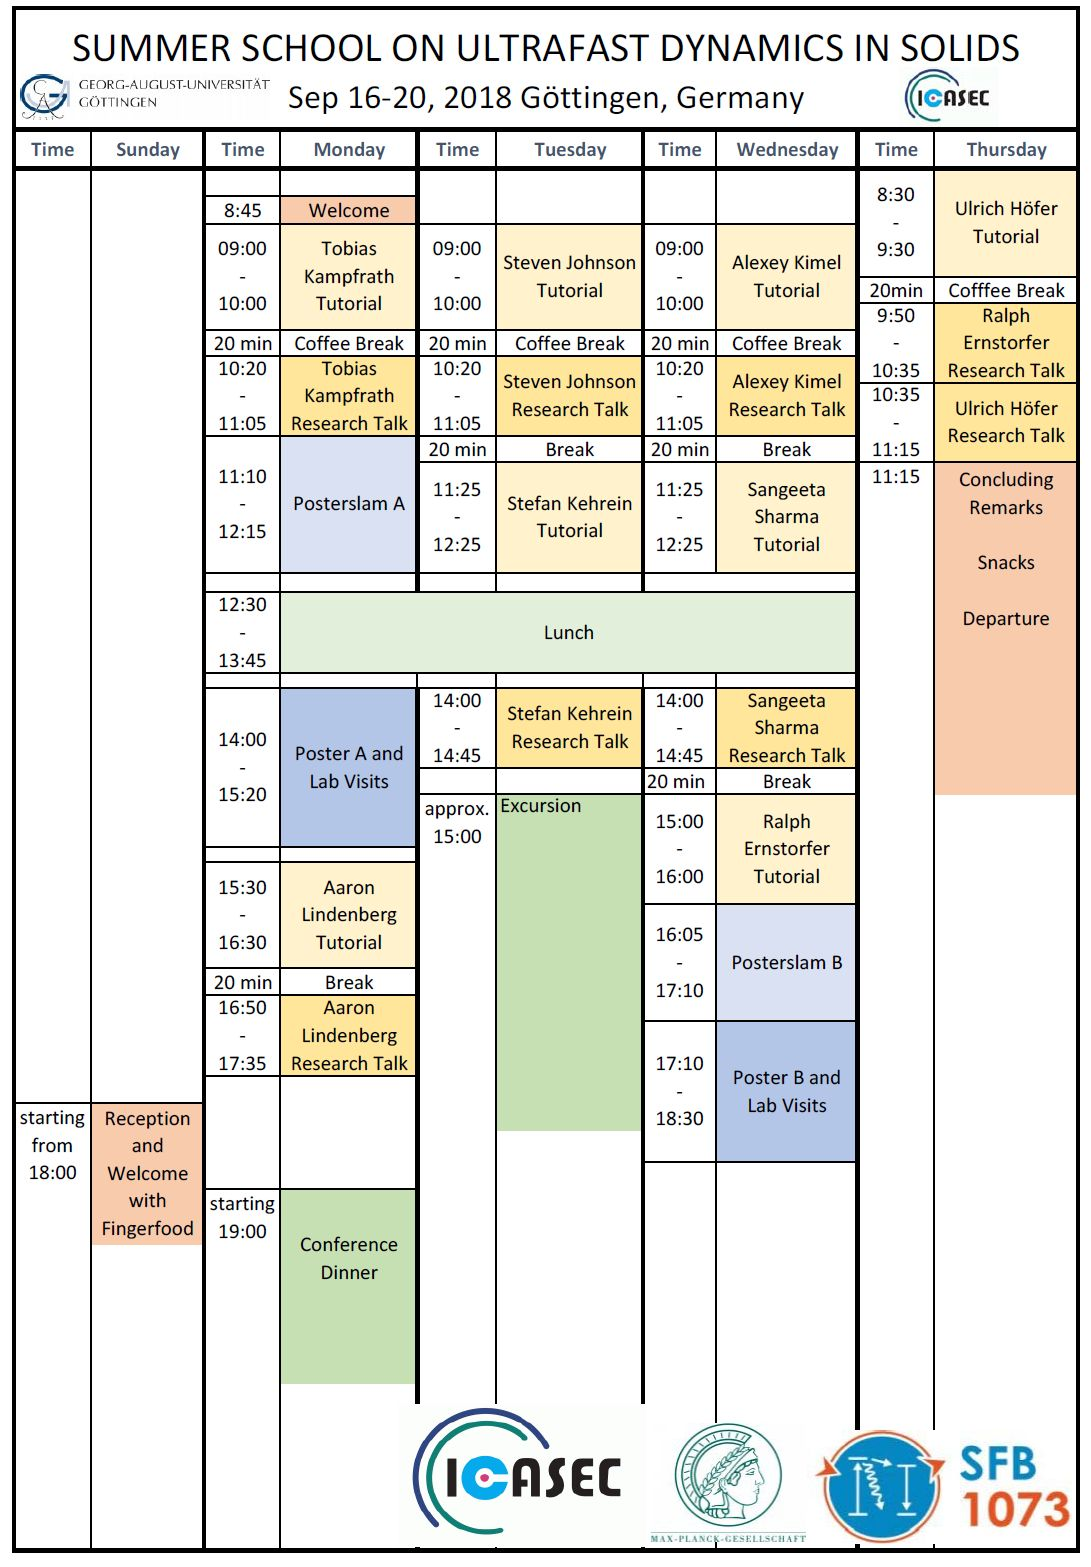 TimeTable Summerschool 2018